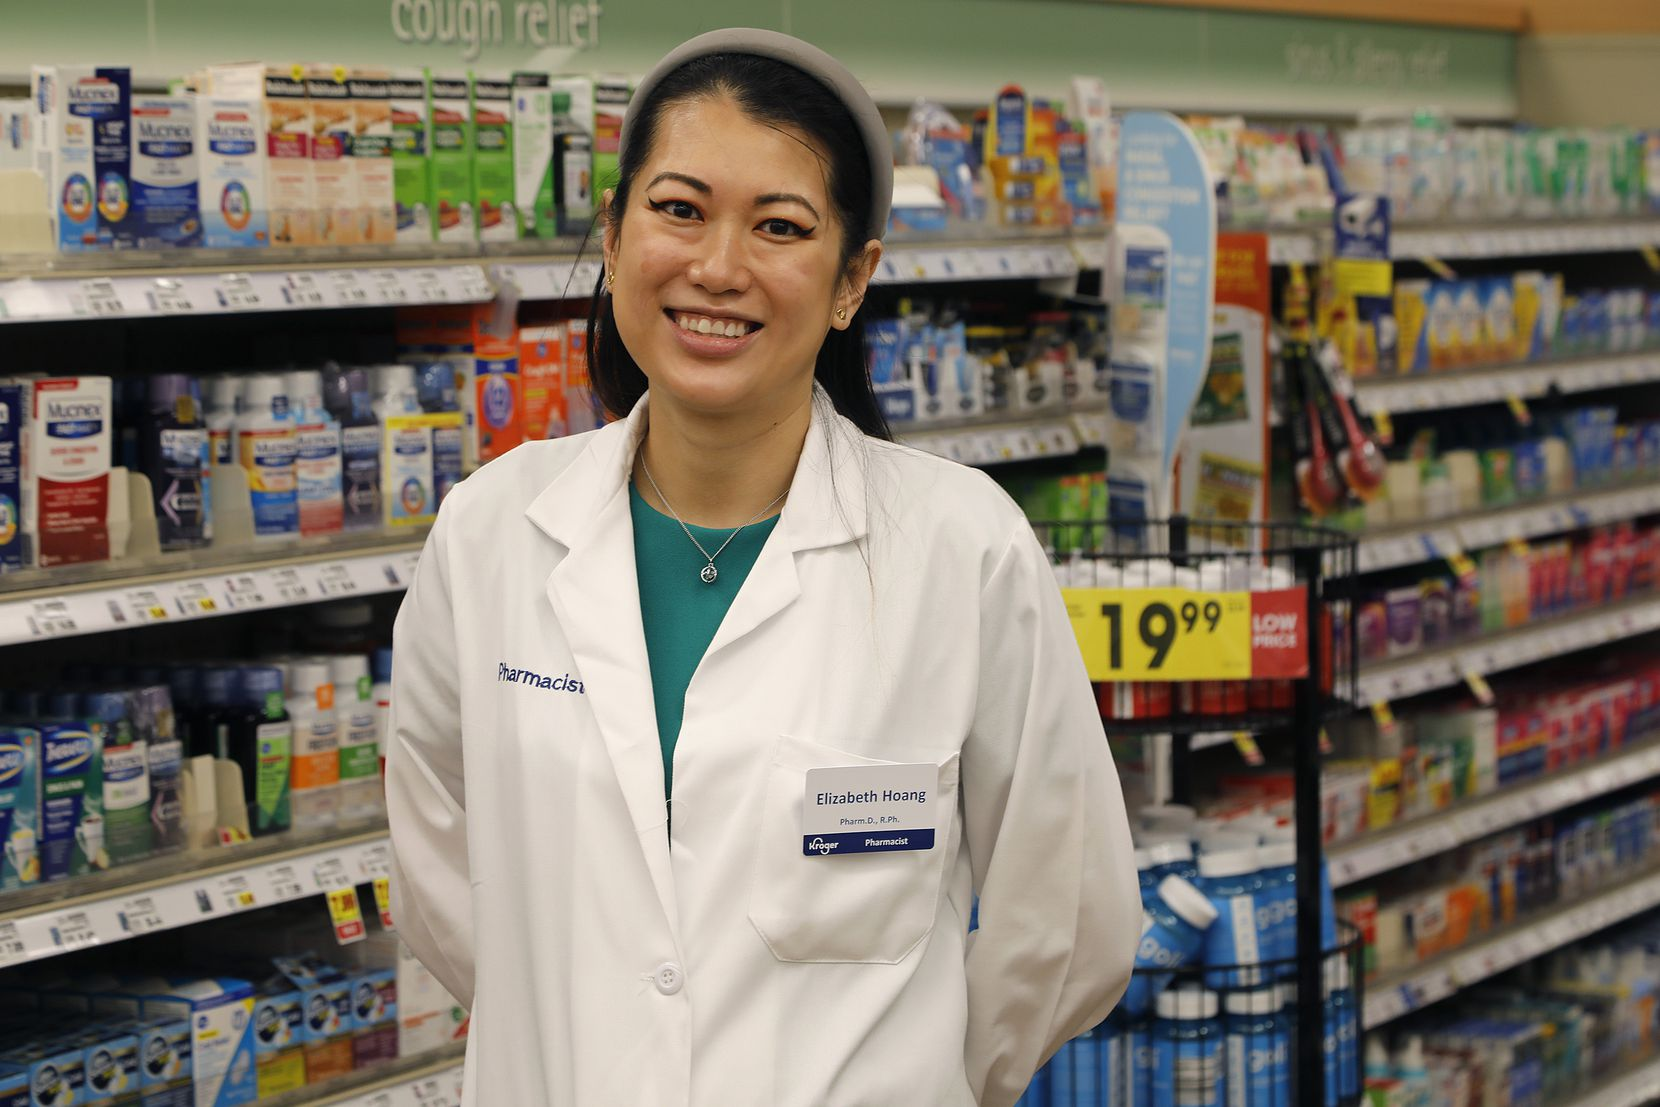 Elizabeth Hoang is a pharmacist at the Kroger Pharmacy in Flower Mound on Saturday, July 8, 2021, and she helped run the Fair Park vaccine clinic for Dallas County. (Stewart F. House/Special Contributor)